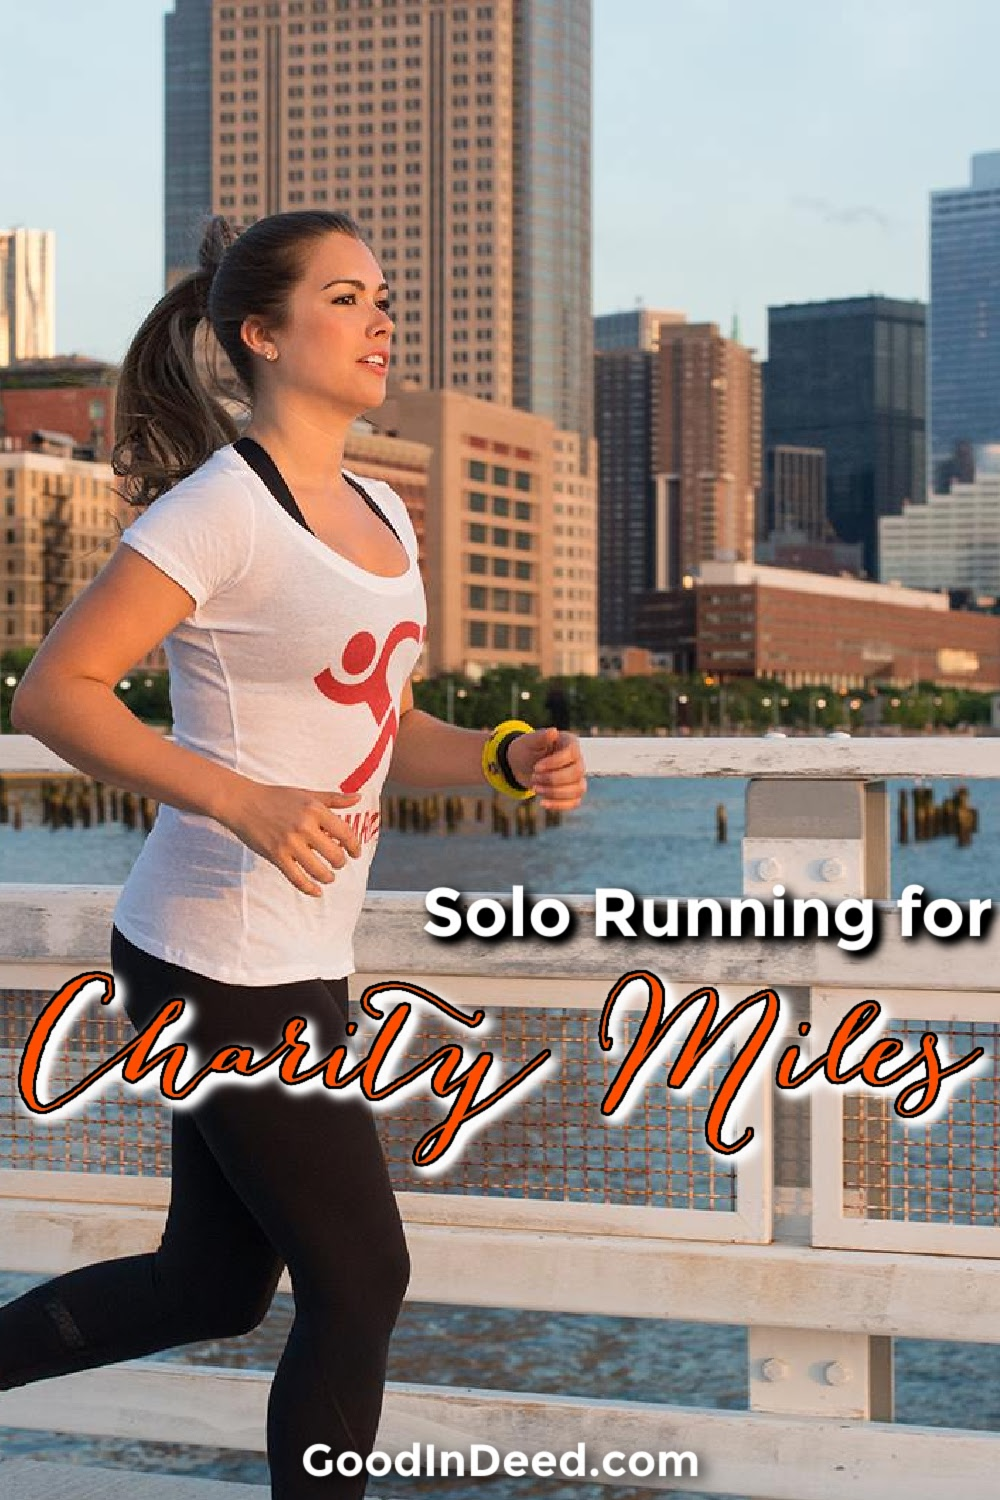 Solo running for Charity Miles is a great way to make a difference while also focusing on your physical activity.